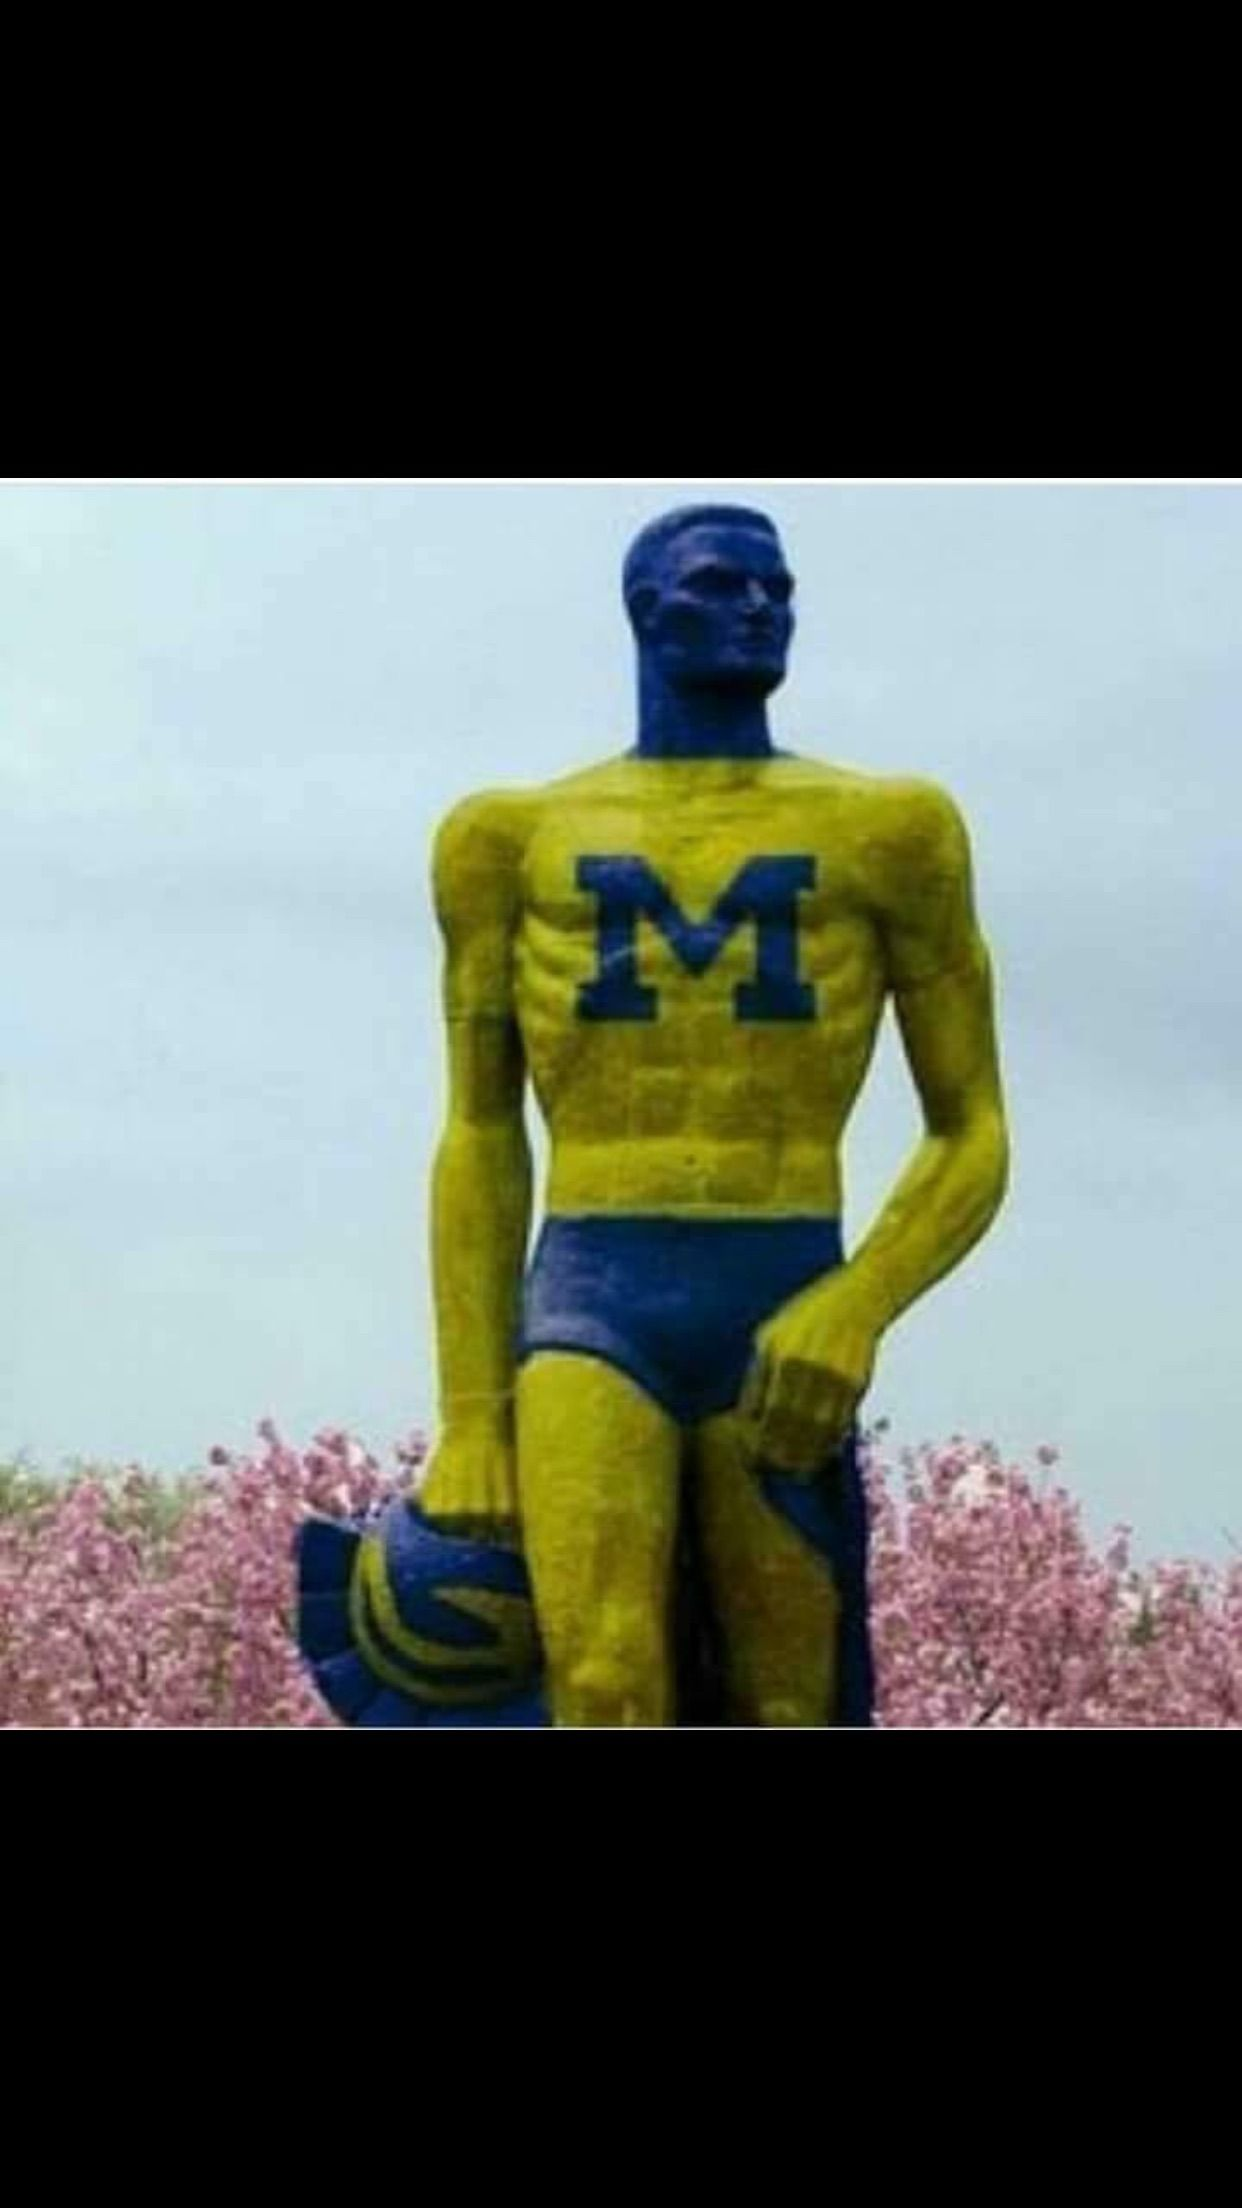 Pin by Bill Mohler on University of Michigan Go blue